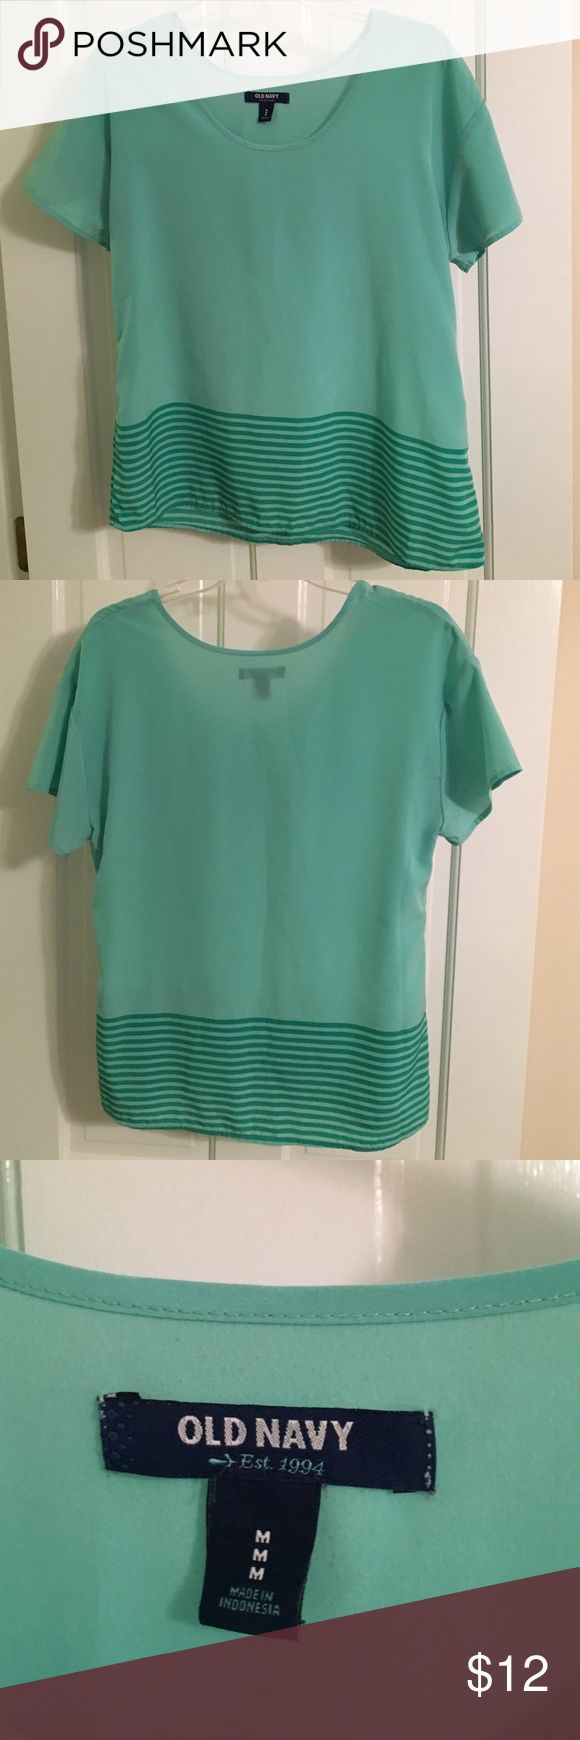 NWOT Cute top from Old Navy Mint green shirt from old navy Old Navy Tops Blouses